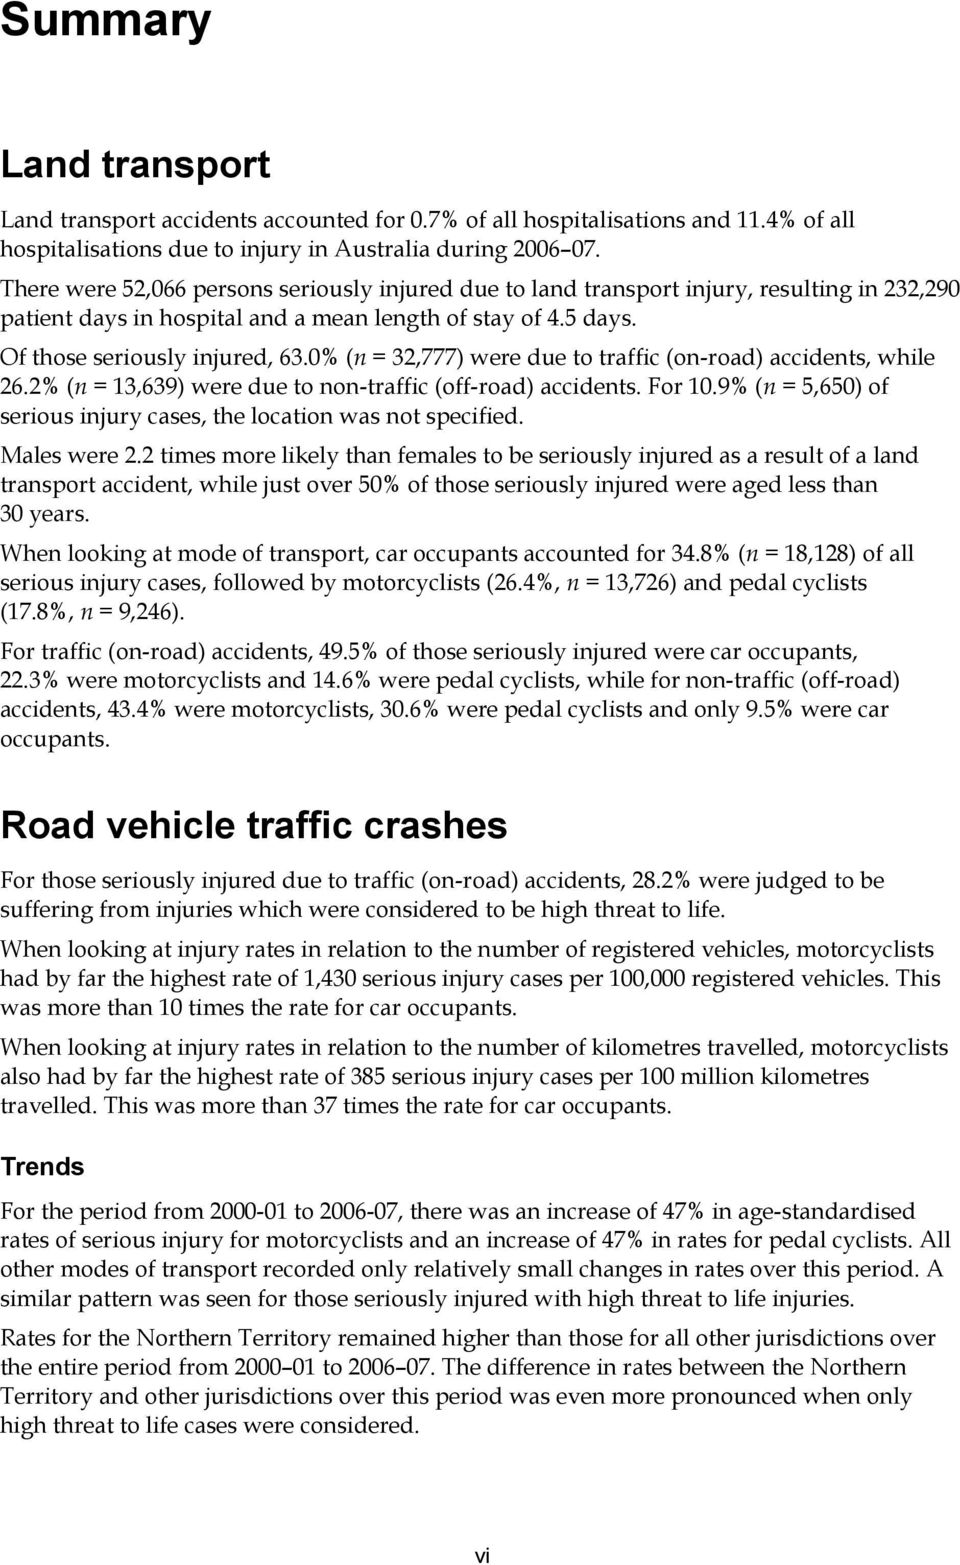 0% (n = 32,777) were due to traffic (on-road) accidents, while 26.2% (n = 13,639) were due to non-traffic (off-road) accidents. For 10.